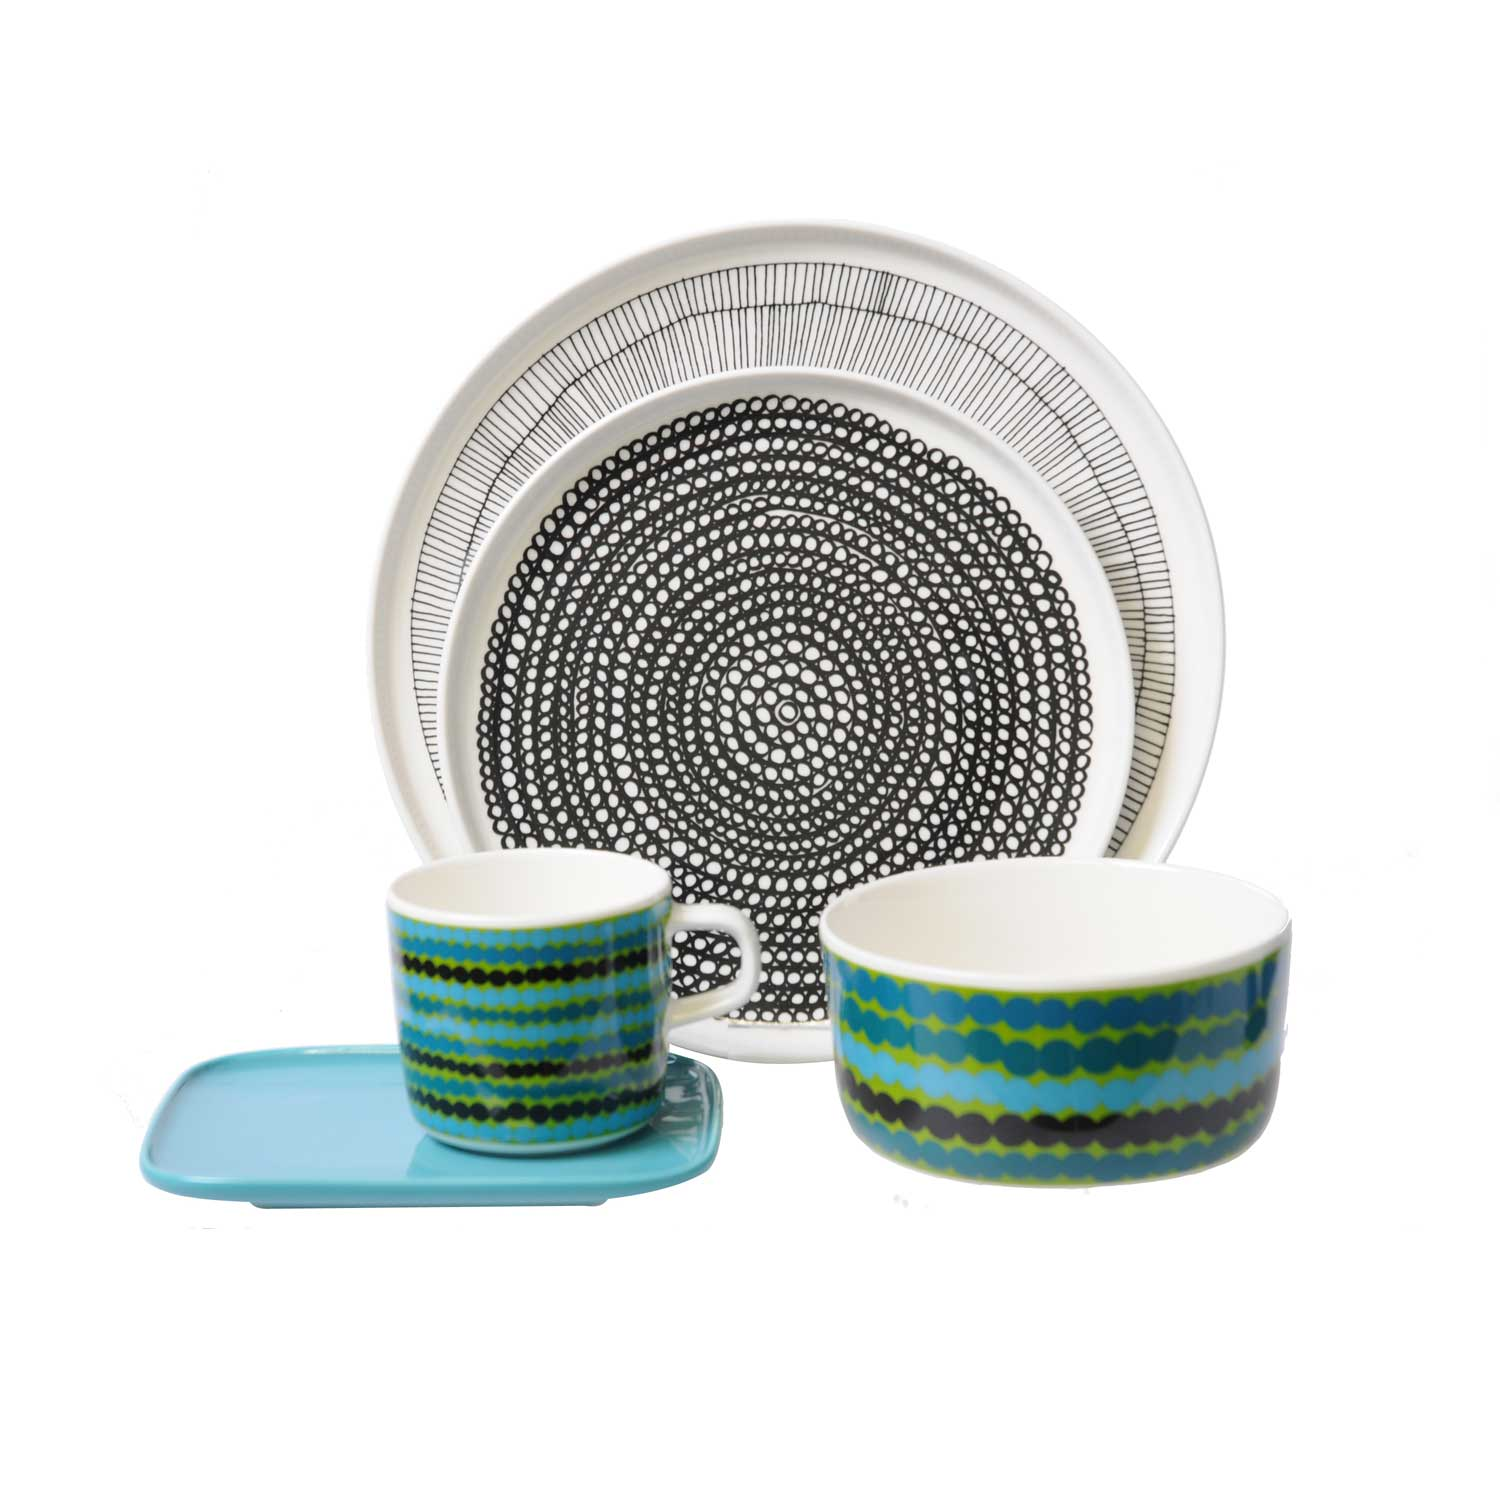 1500x1500px 10 Charming Marimekko Dinnerware Picture in Others